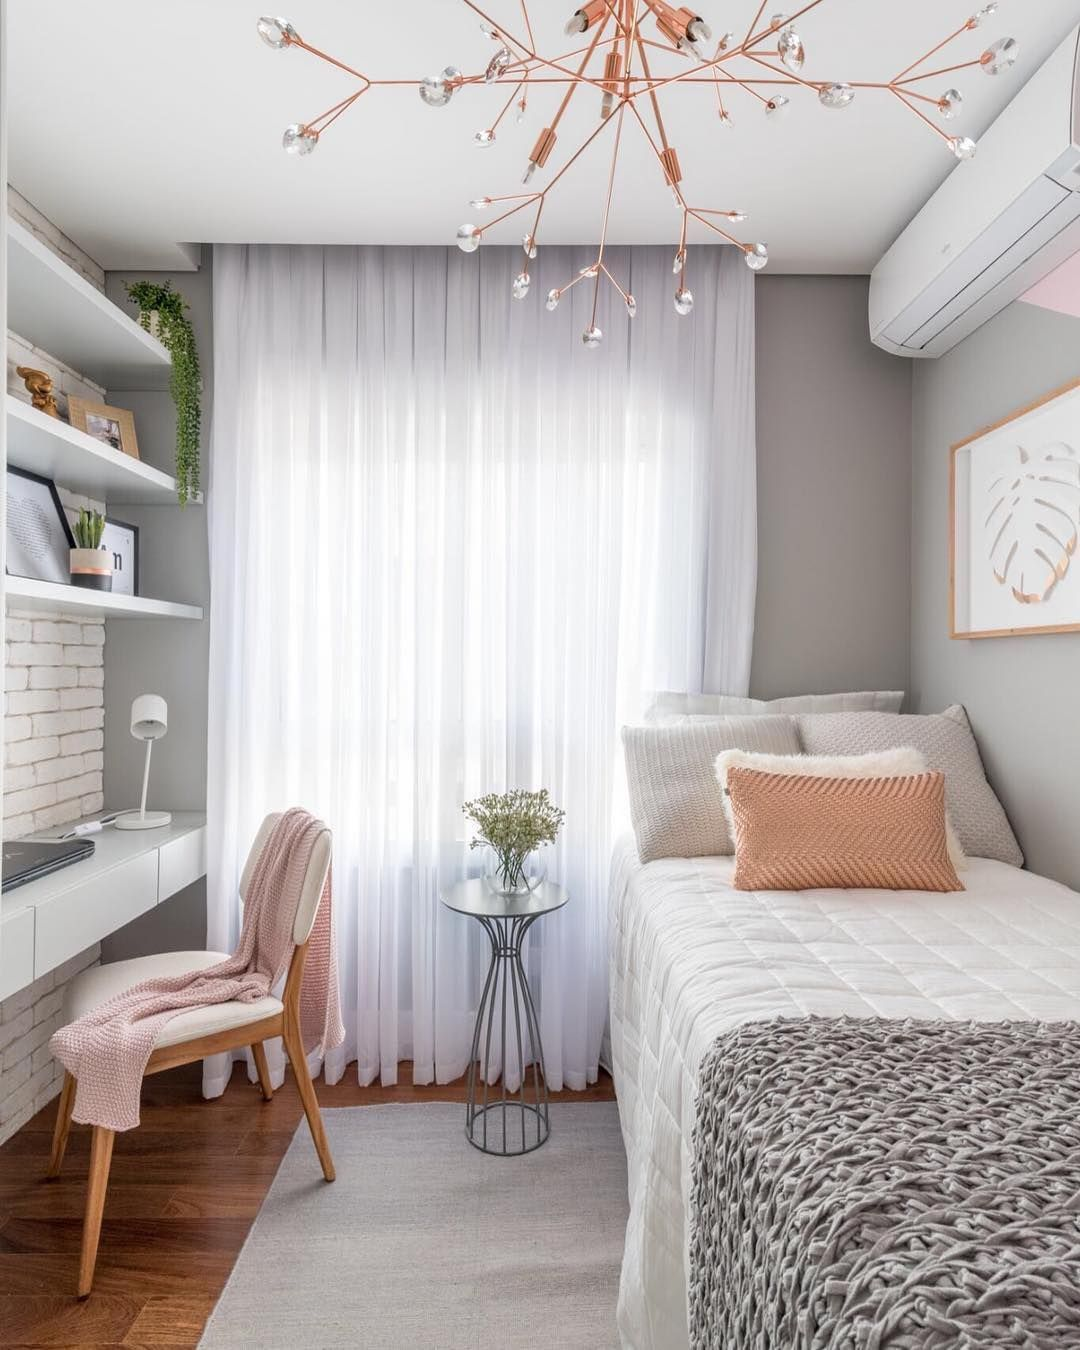 This Is A Small Bedroom Ideas Tips To Help You Create A Bedroom Space That May Be Small In Square Footag Small Bedroom Decor Small Room Bedroom Woman Bedroom